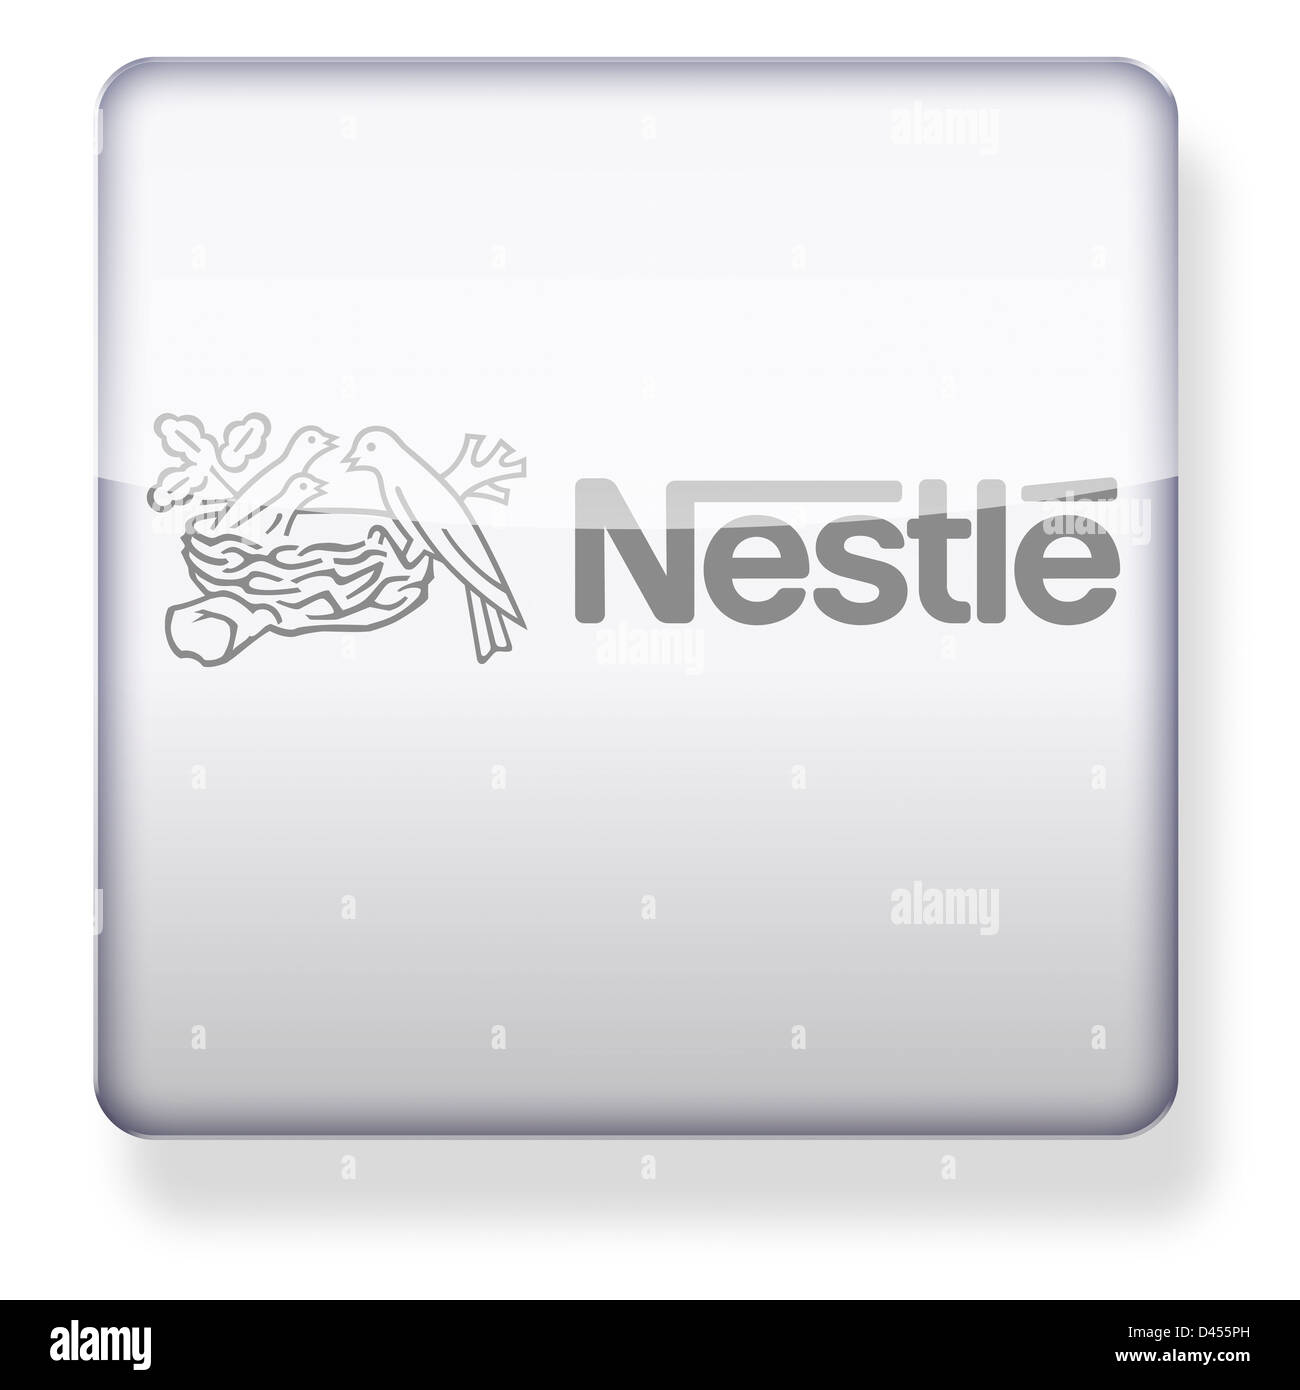 Nestle logo as an app icon. Clipping path included. - Stock Image